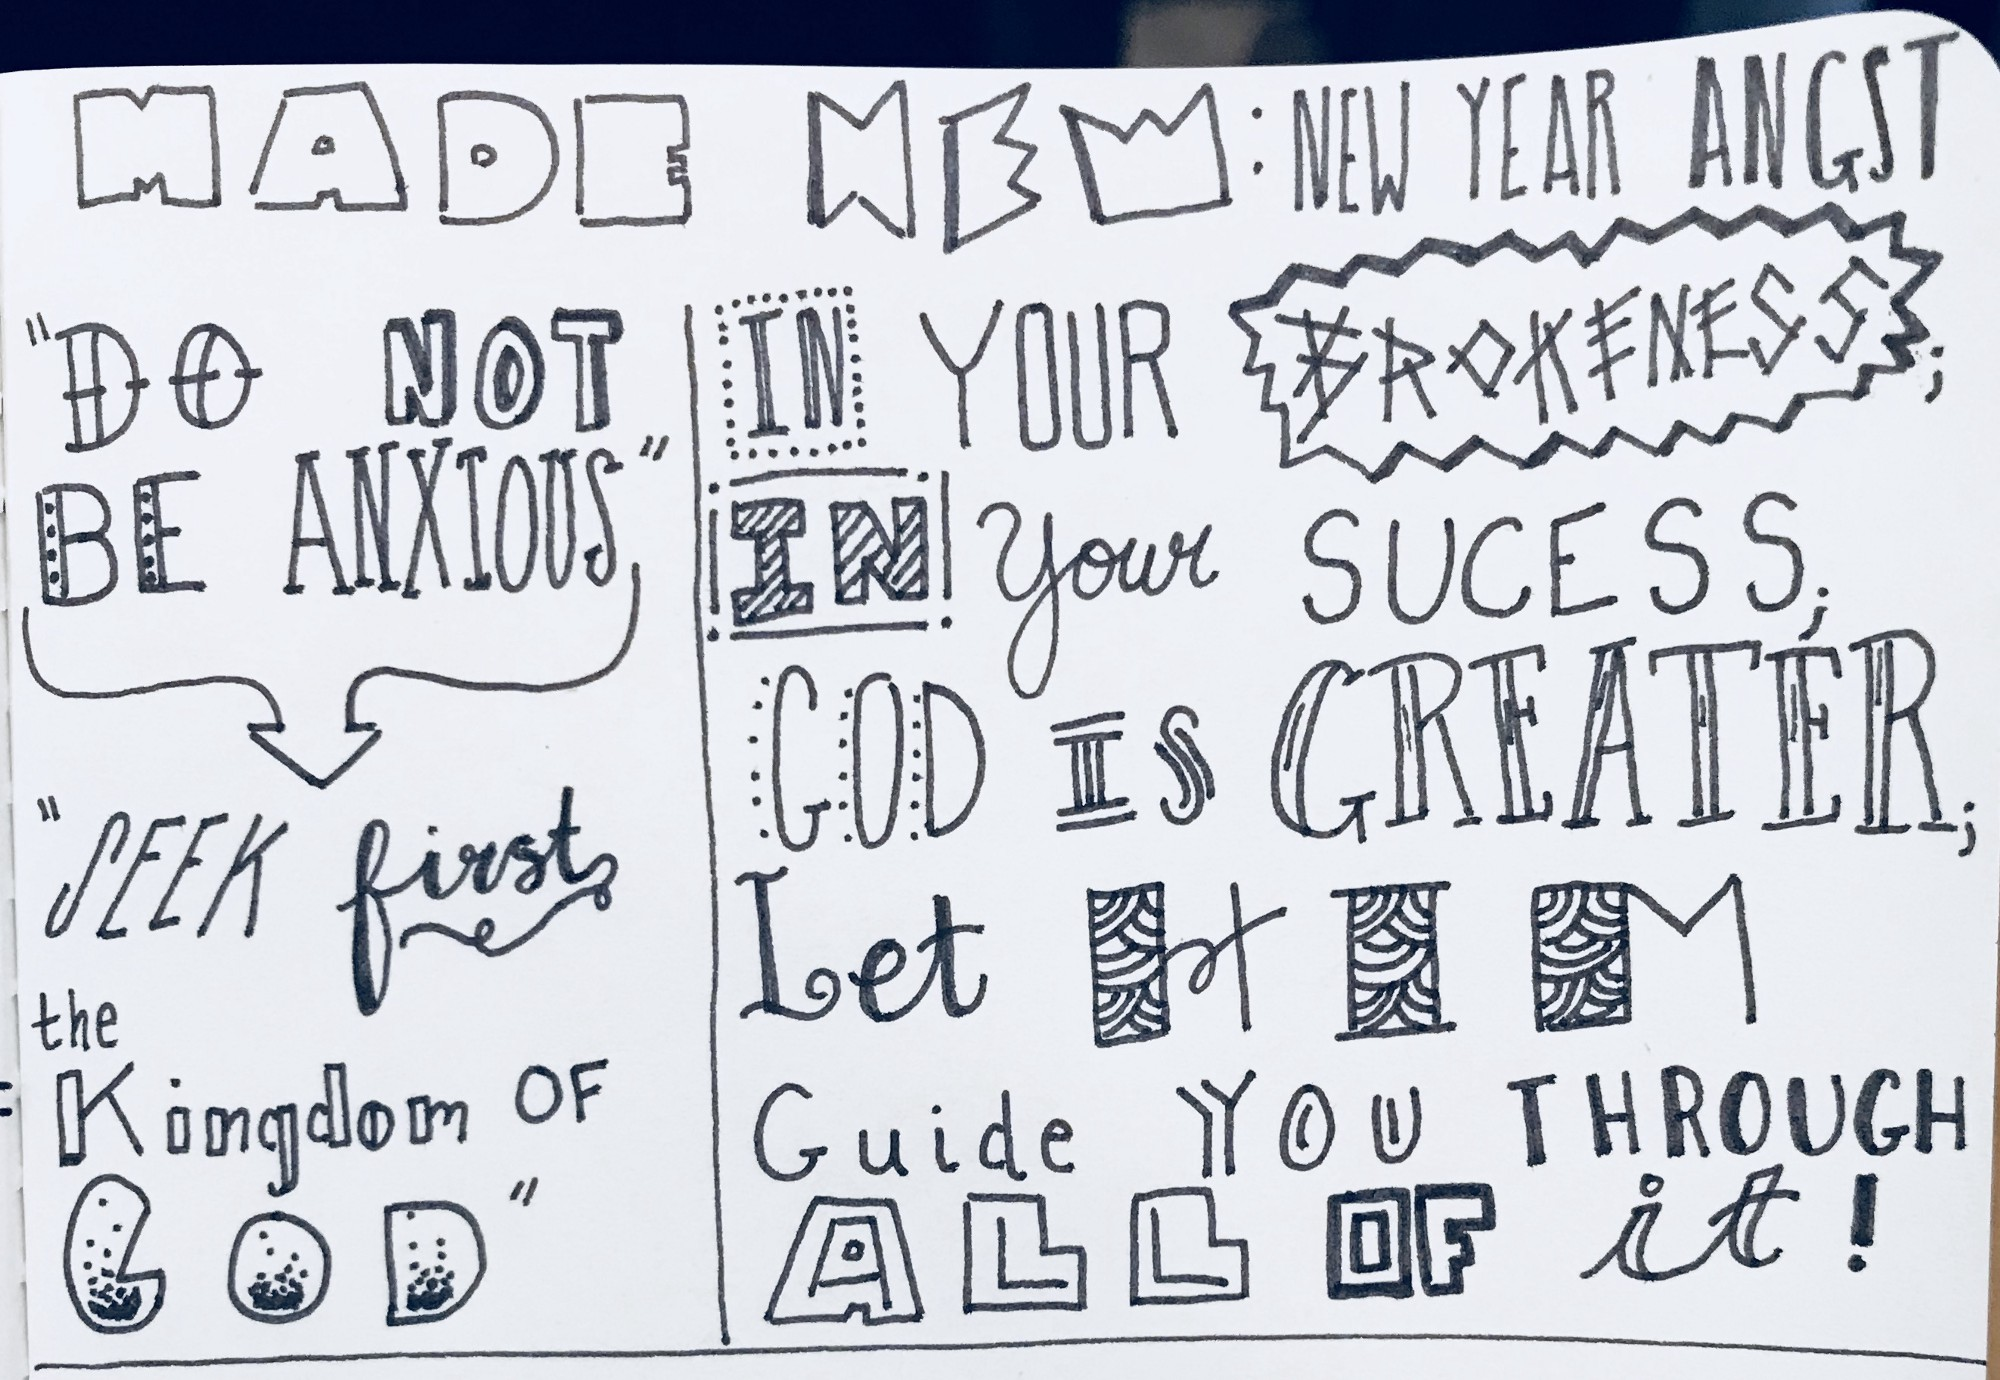 Sketchbook Devotional — Everyday Living in a New Year Year